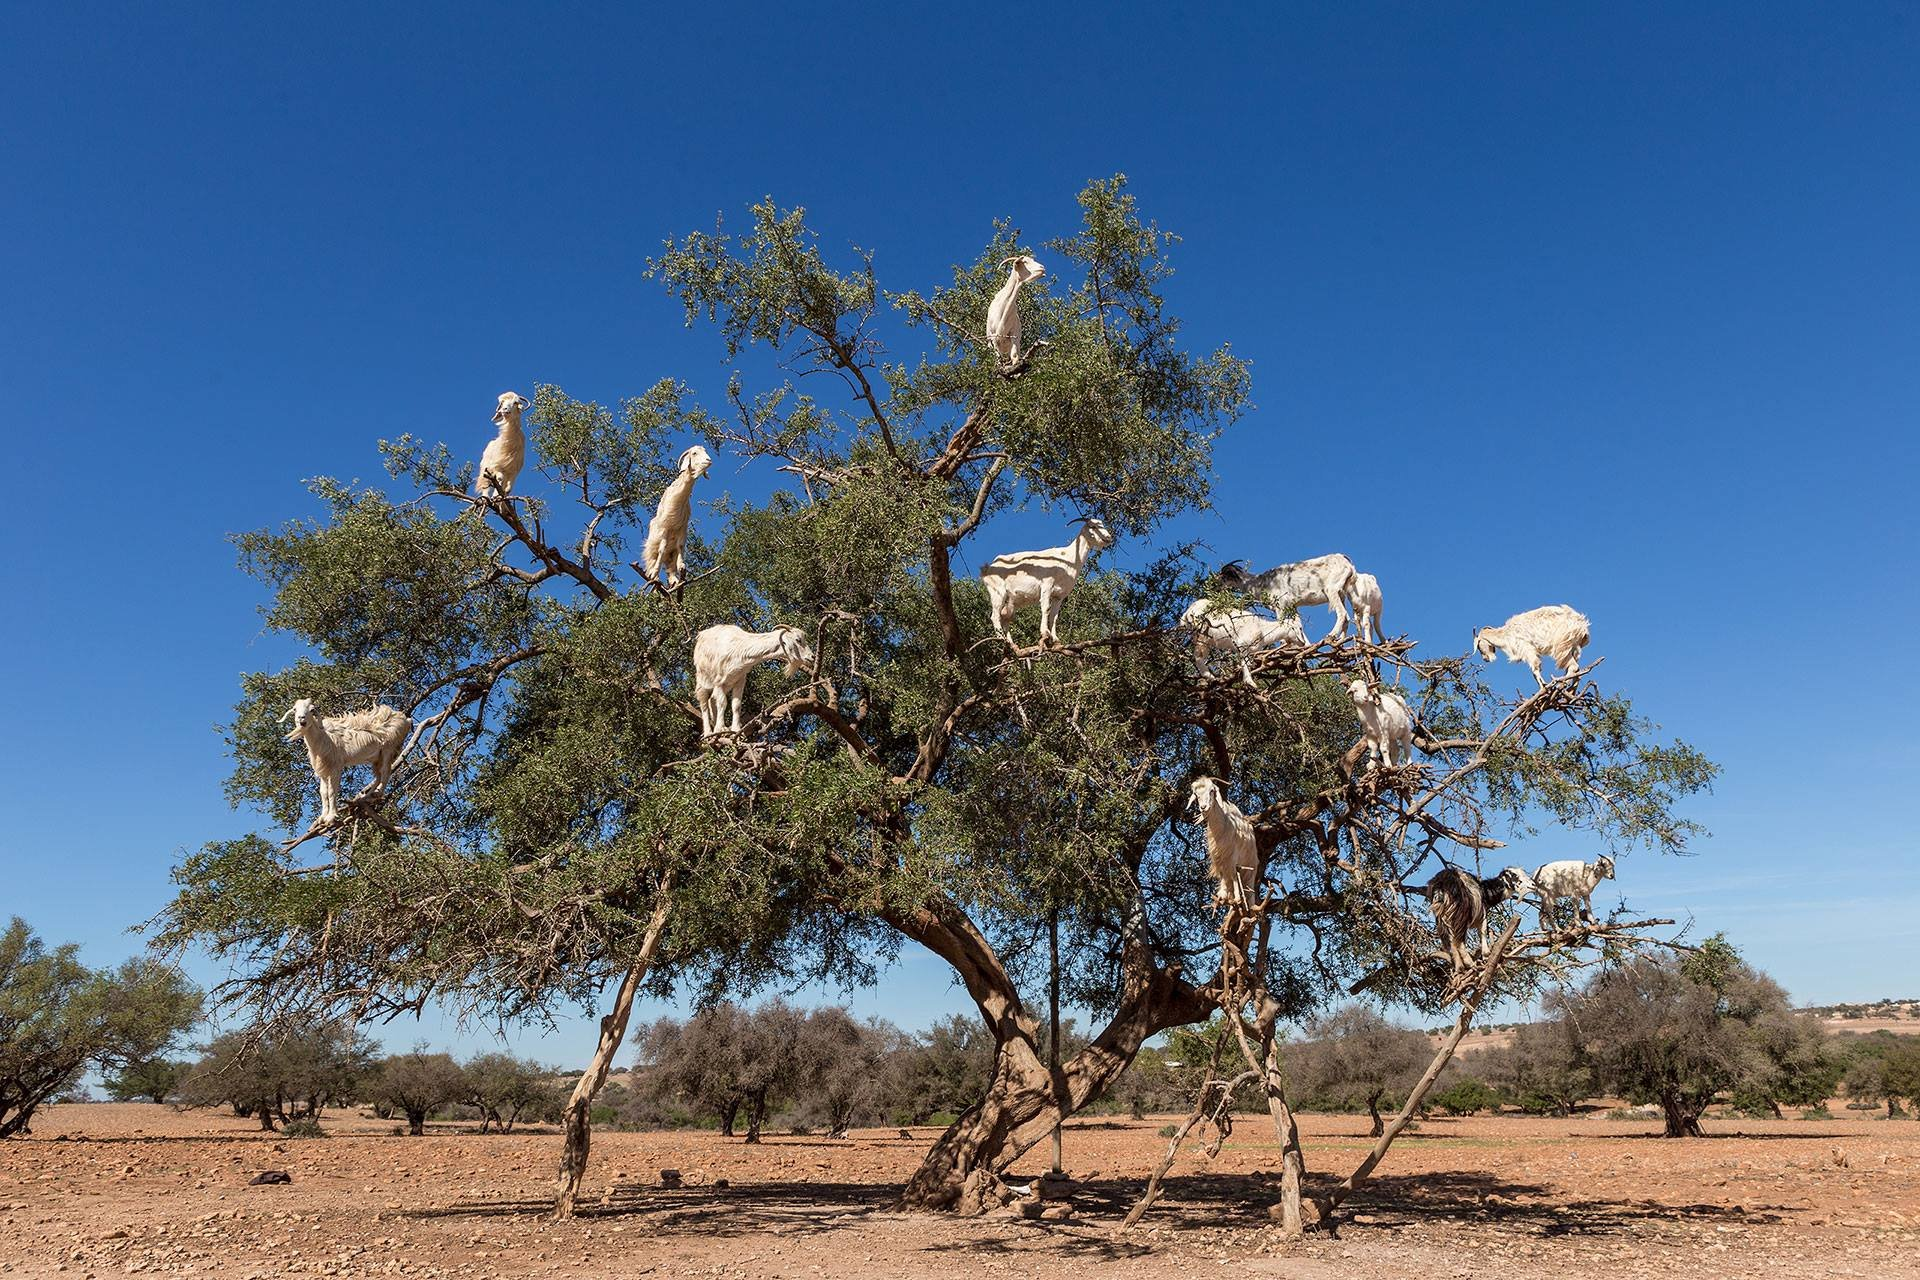 Goats of Souss Valley in Morocco 2020 - Best Time